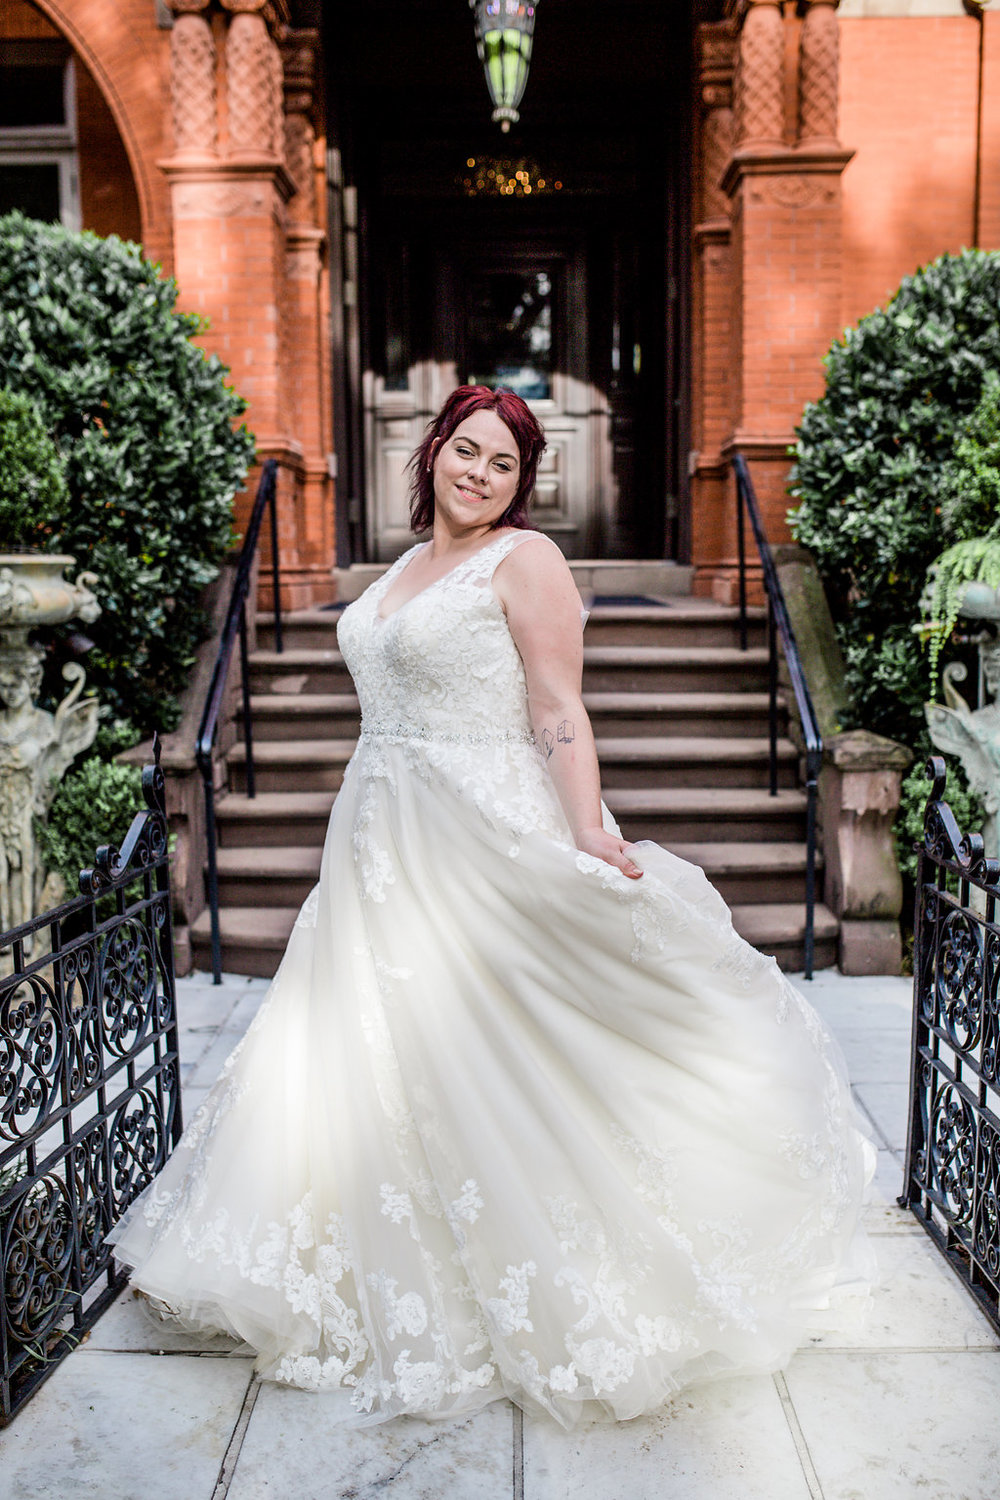 ivory-and-beau-bridal-boutique-alexis-sweet-photography-plus-sized-wedding-gowns-savannah-ga-plus-sized-wedding-dress-savannah-ga-4.jpg